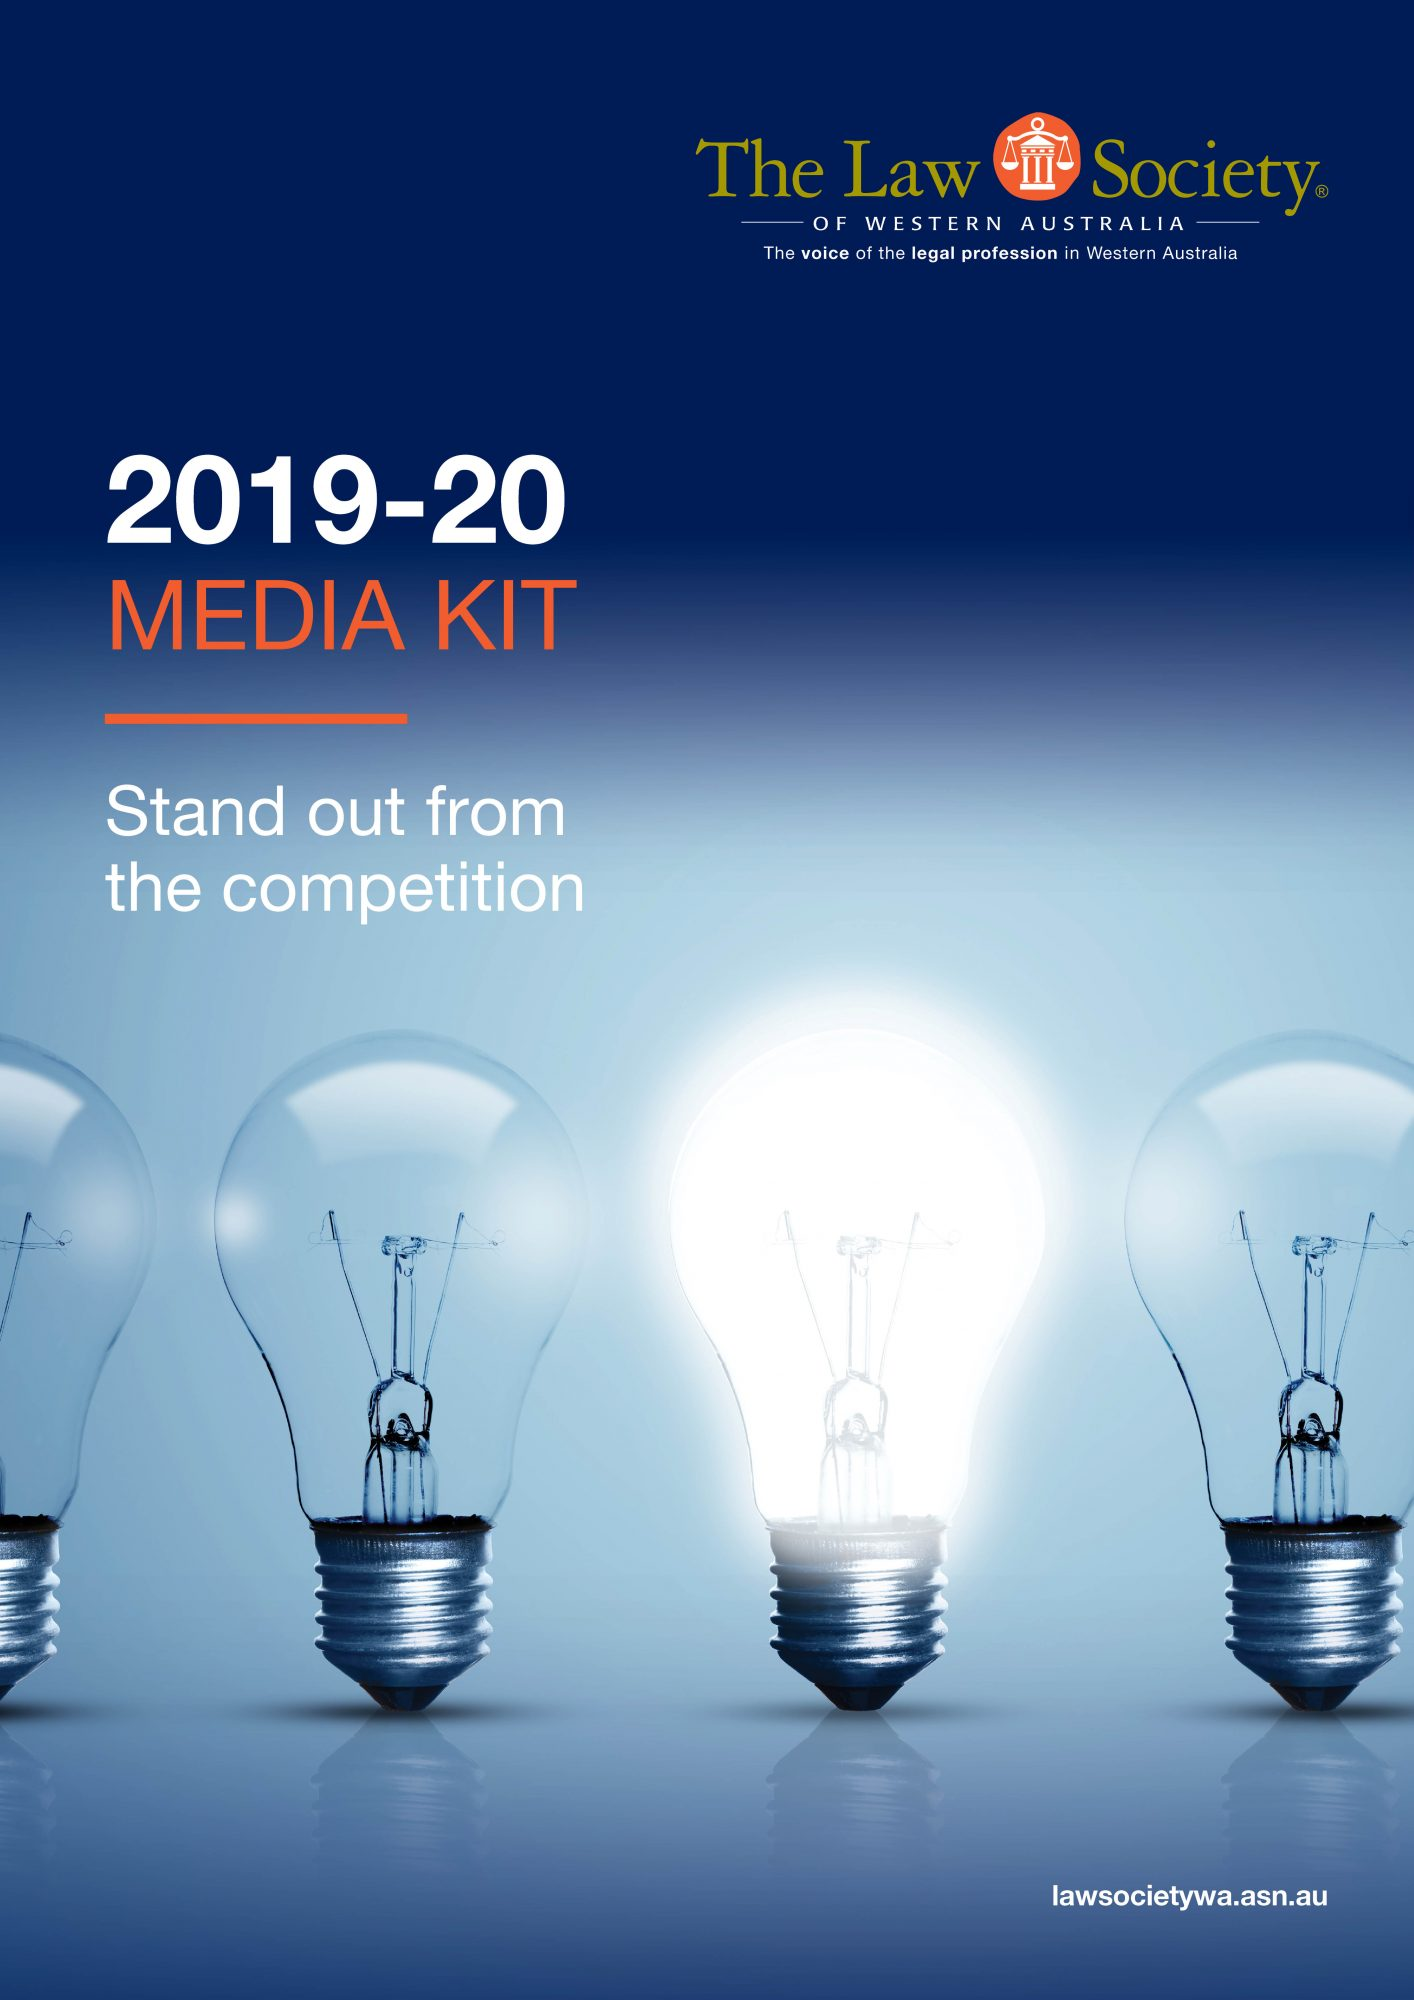 Law Society of WA 2018/19 Media Kit